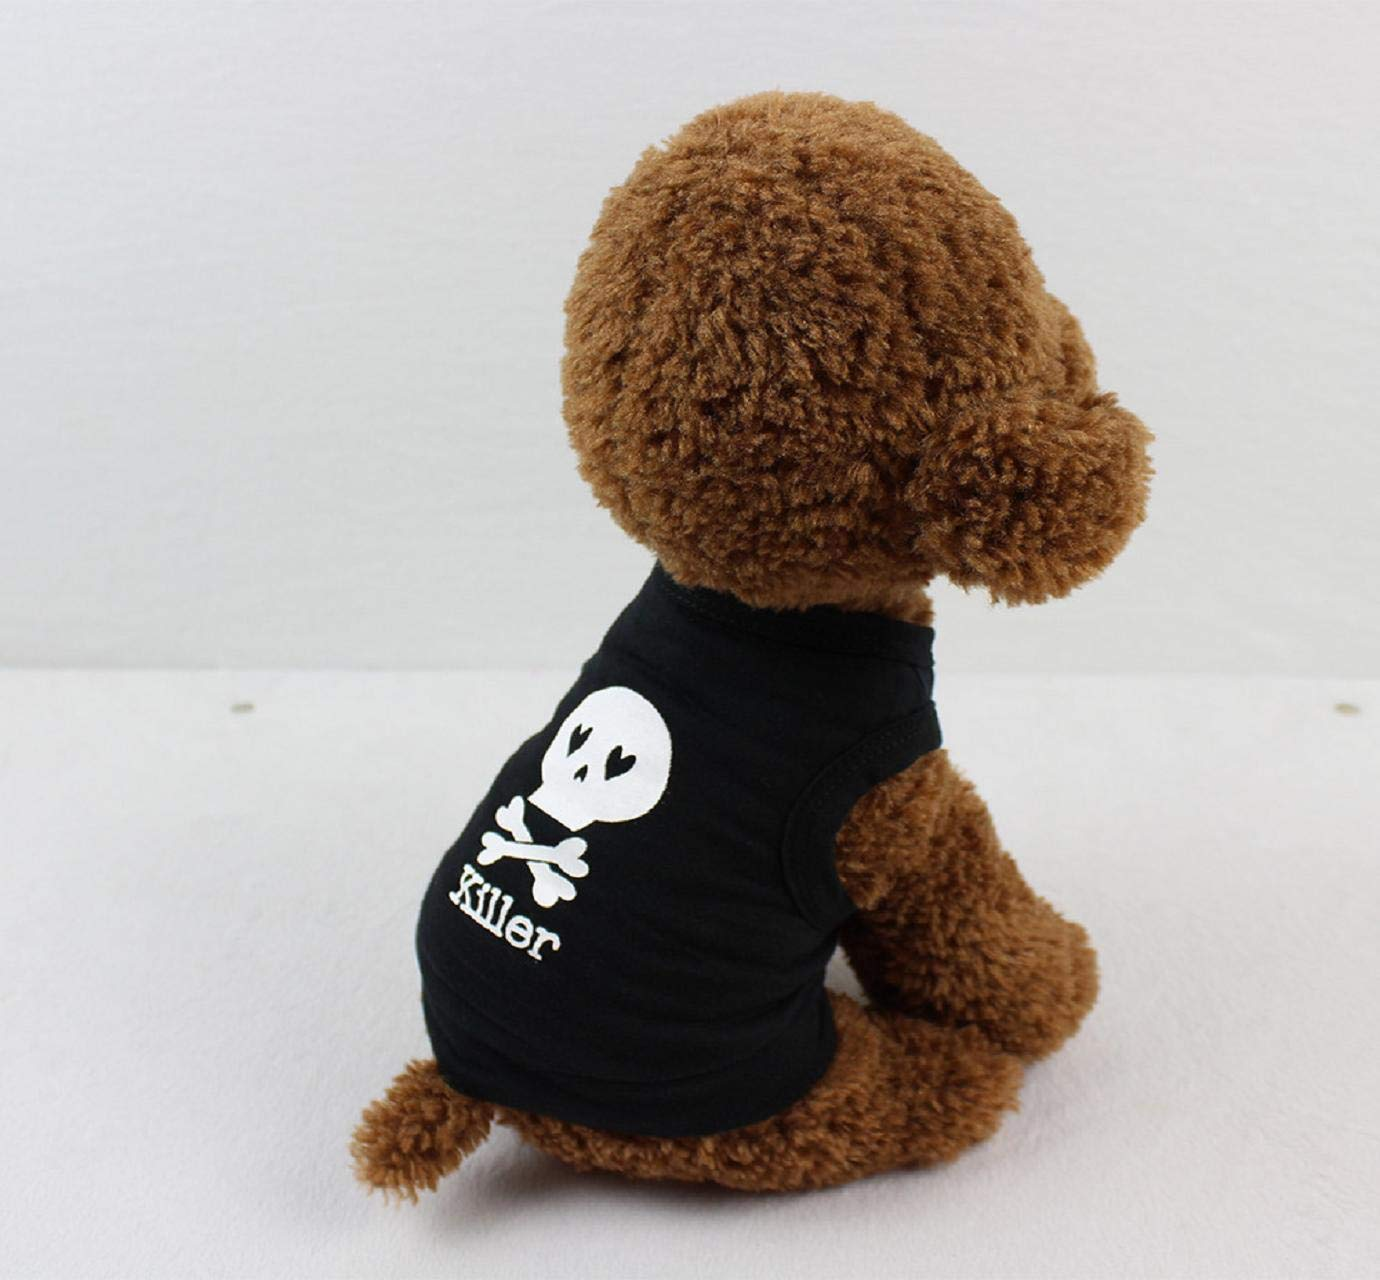 Dogs Clothing Barlingrock Pet Clothes Dog Coats Dog Jackets Windproof Coats Cute Puppy Cotton Costume T-Shirt for Small Dog